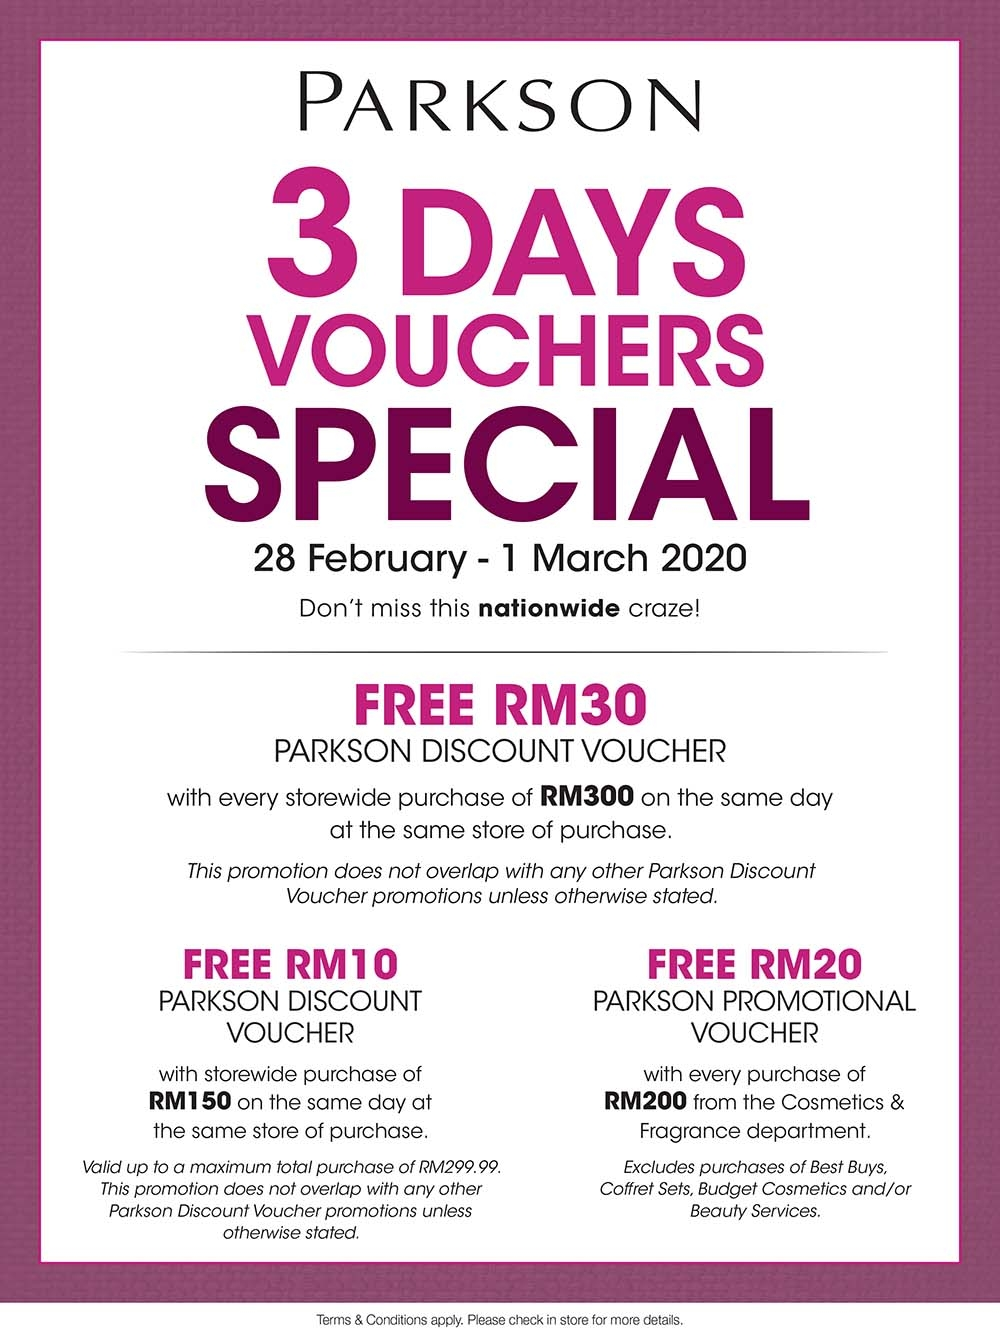 Parkson 3 Days Voucher Special